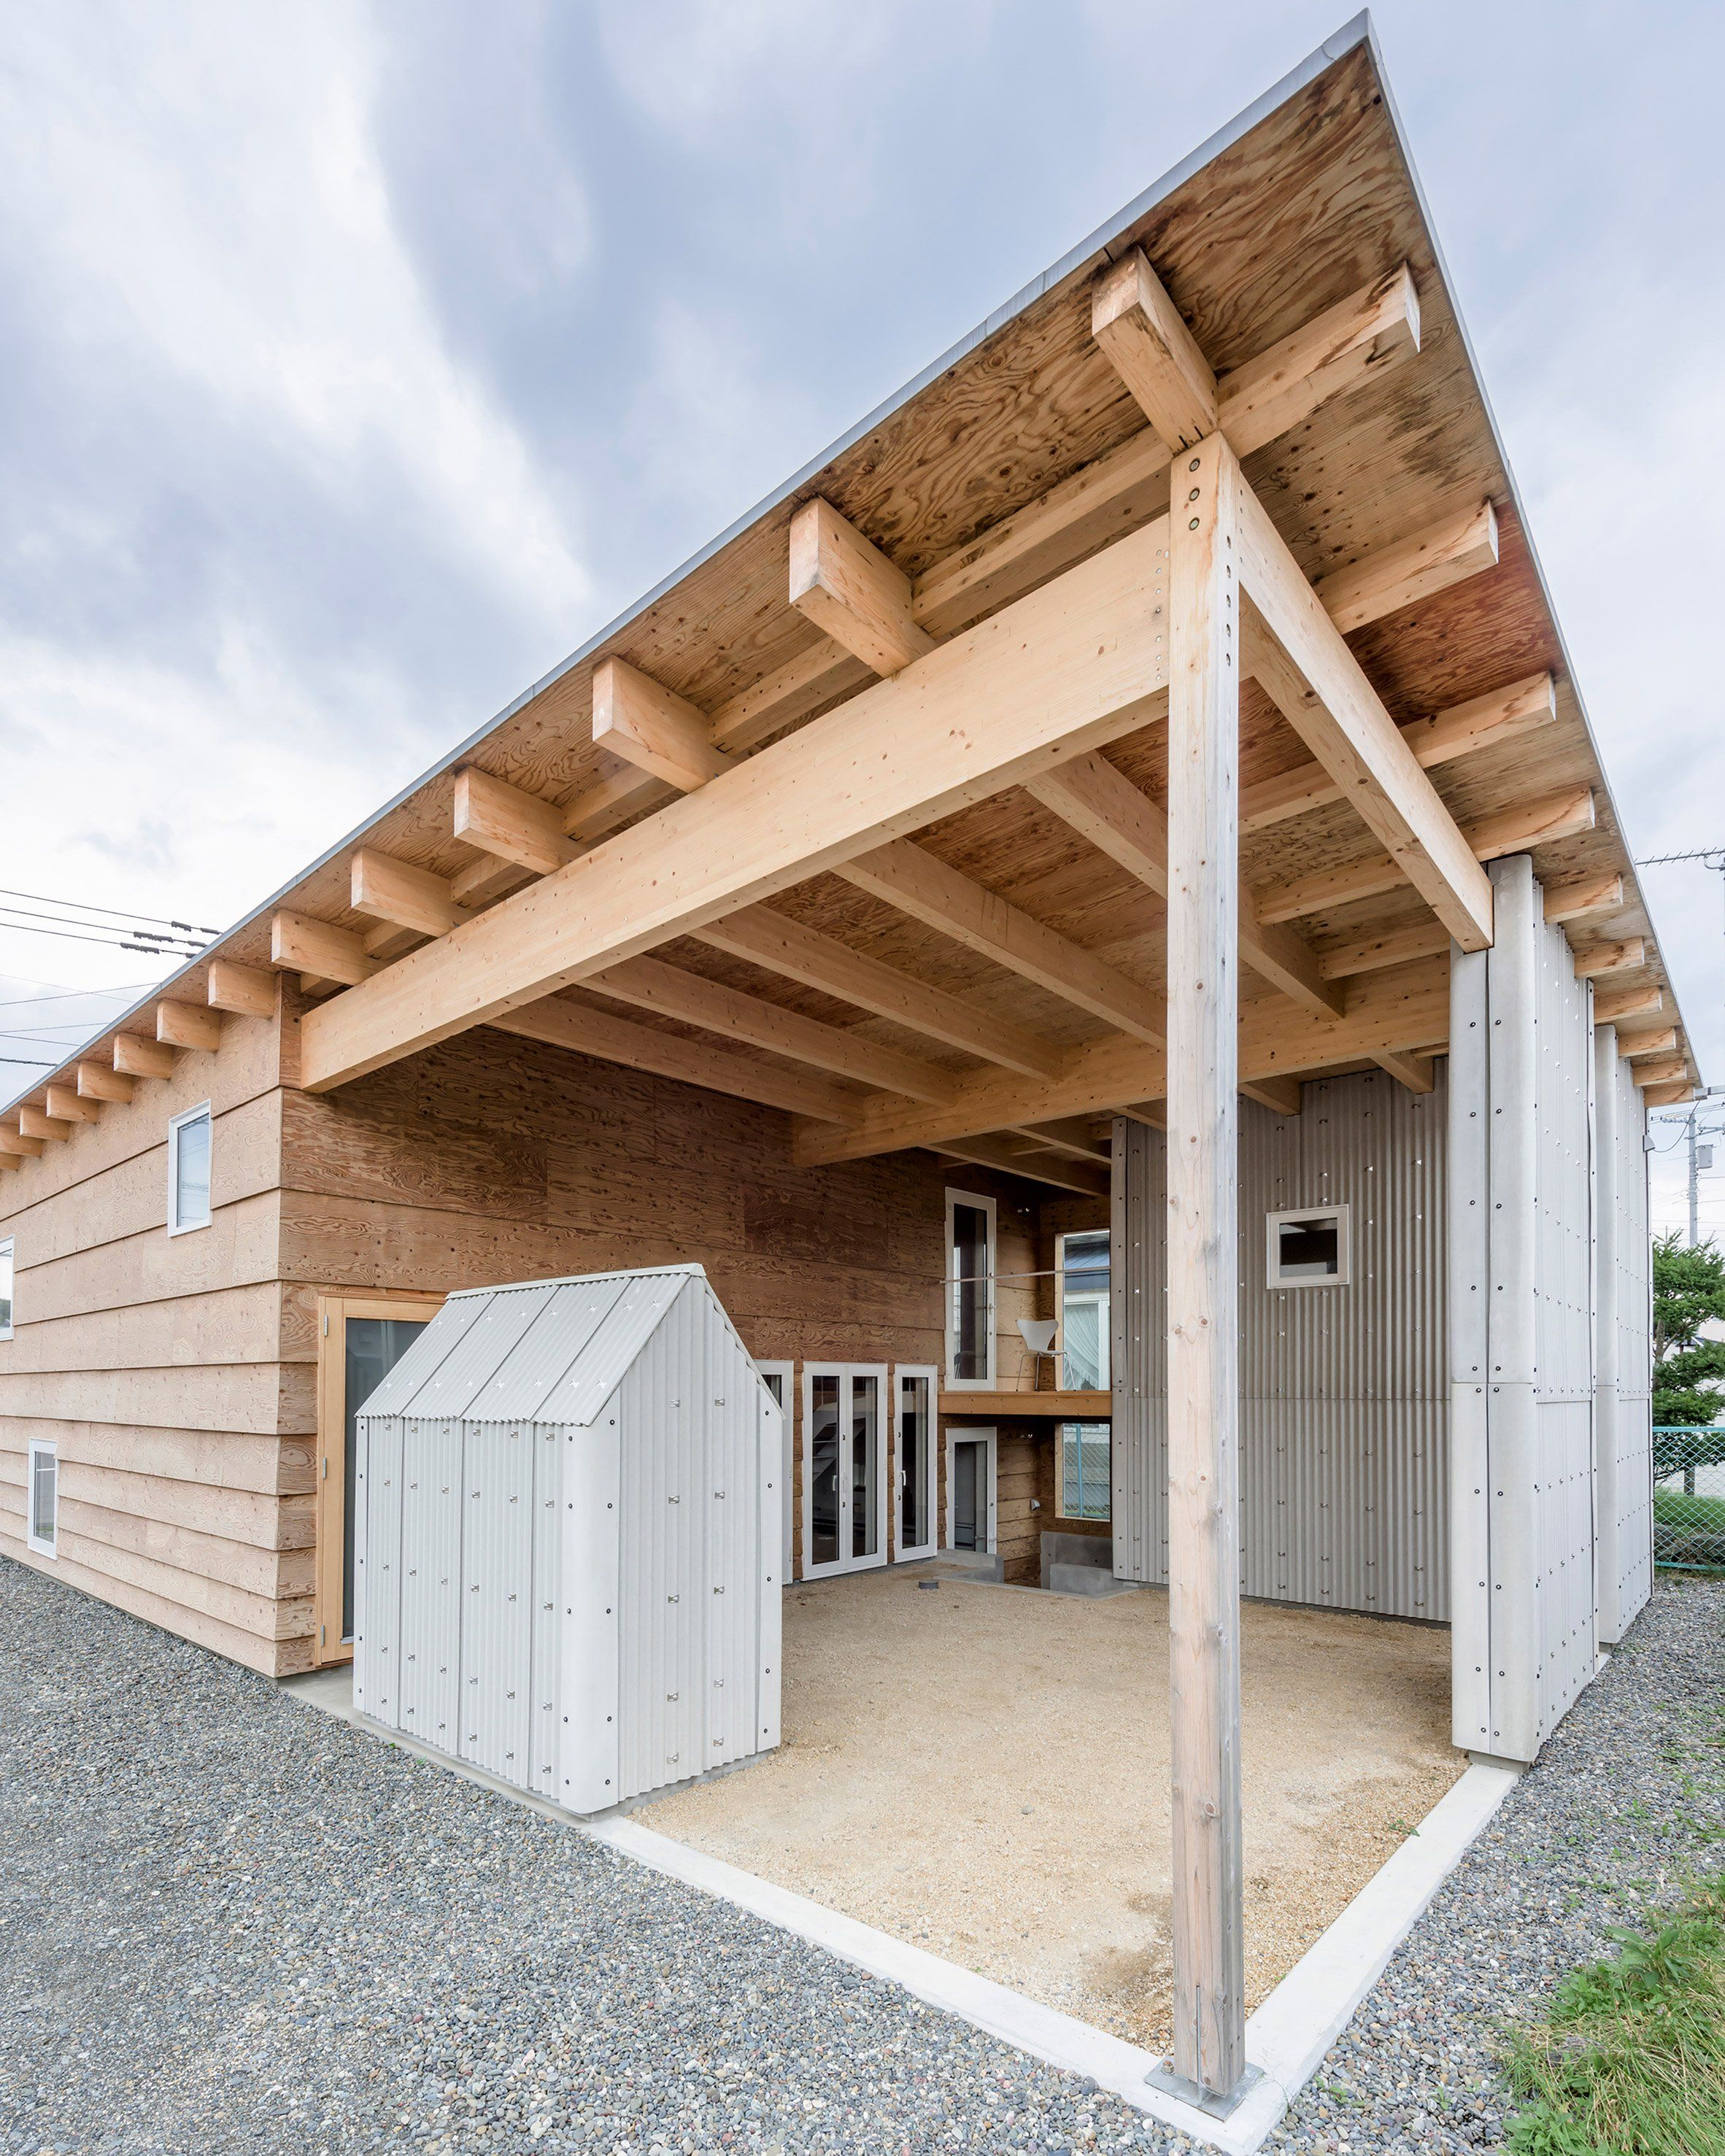 Jun Igarashi Architects have devised an ingenious solution for